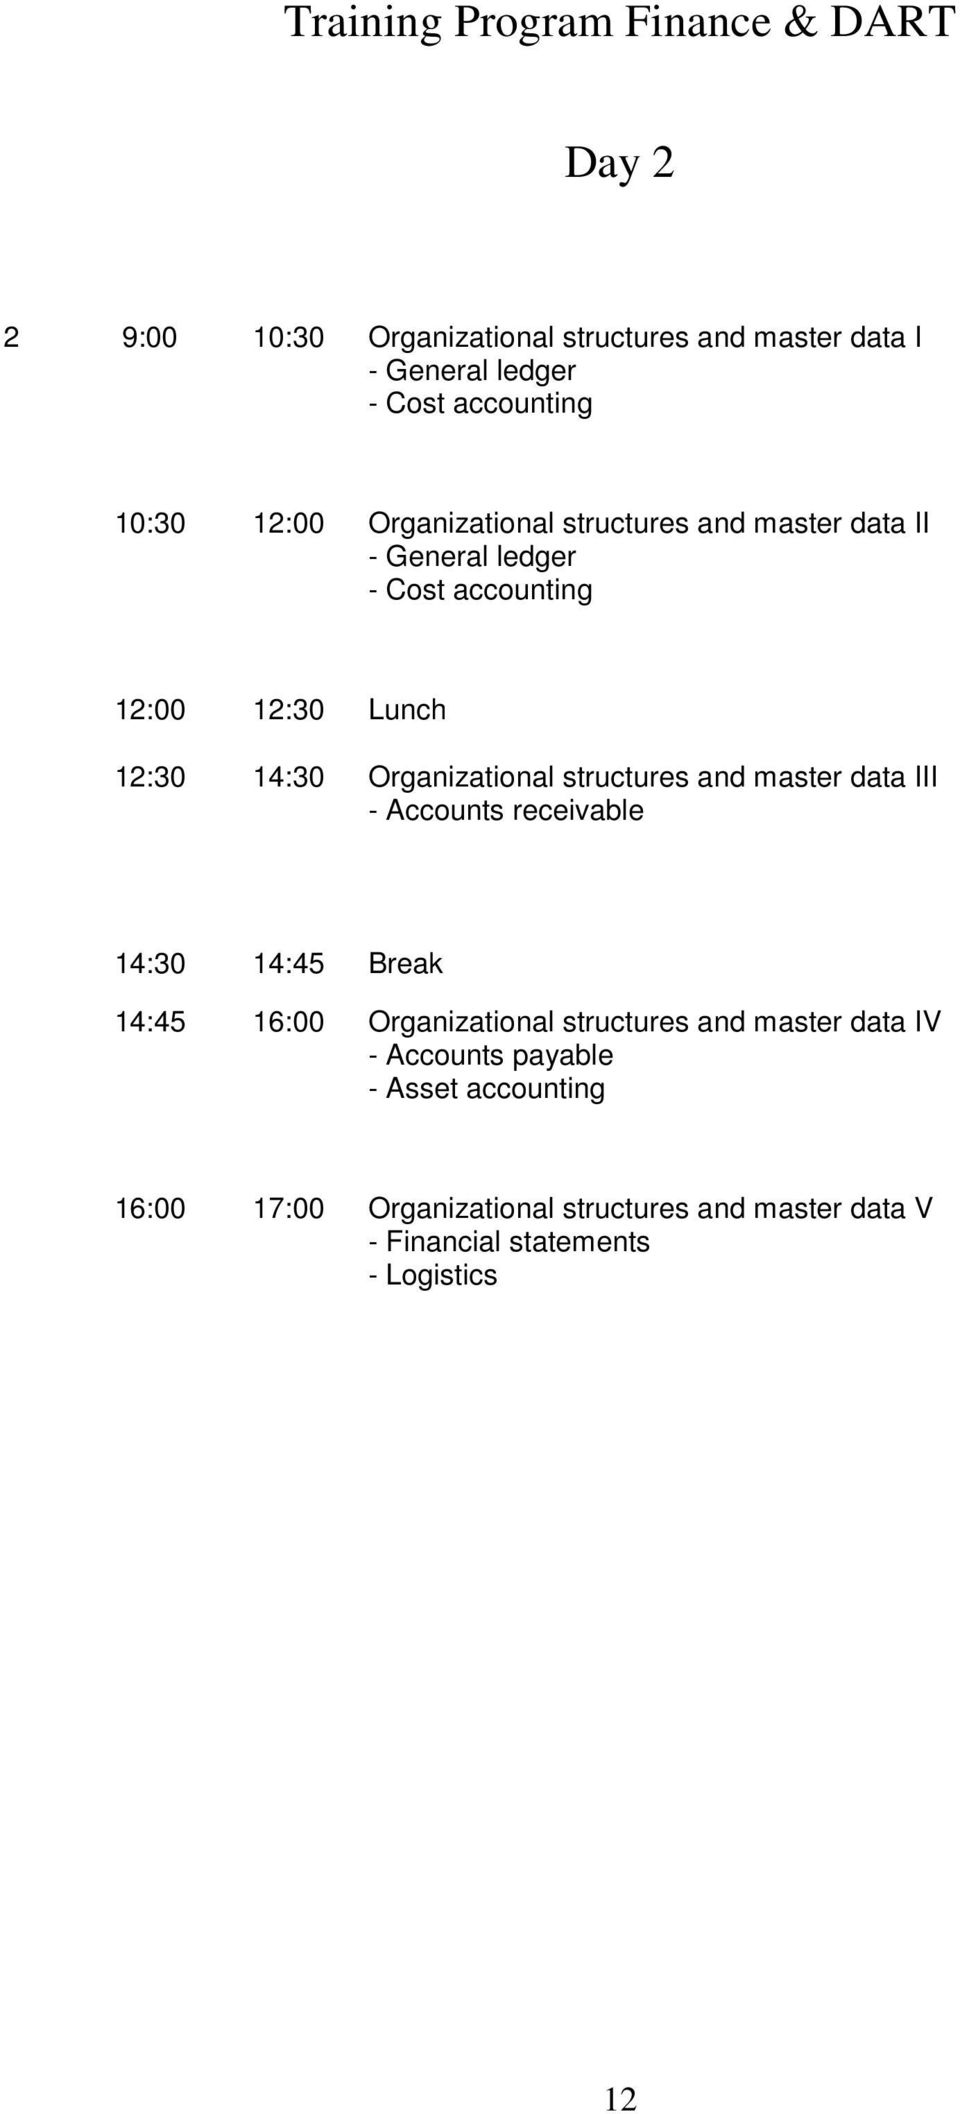 Organizational structures and master data III - Accounts receivable 14:45 16:00 Organizational structures and master data